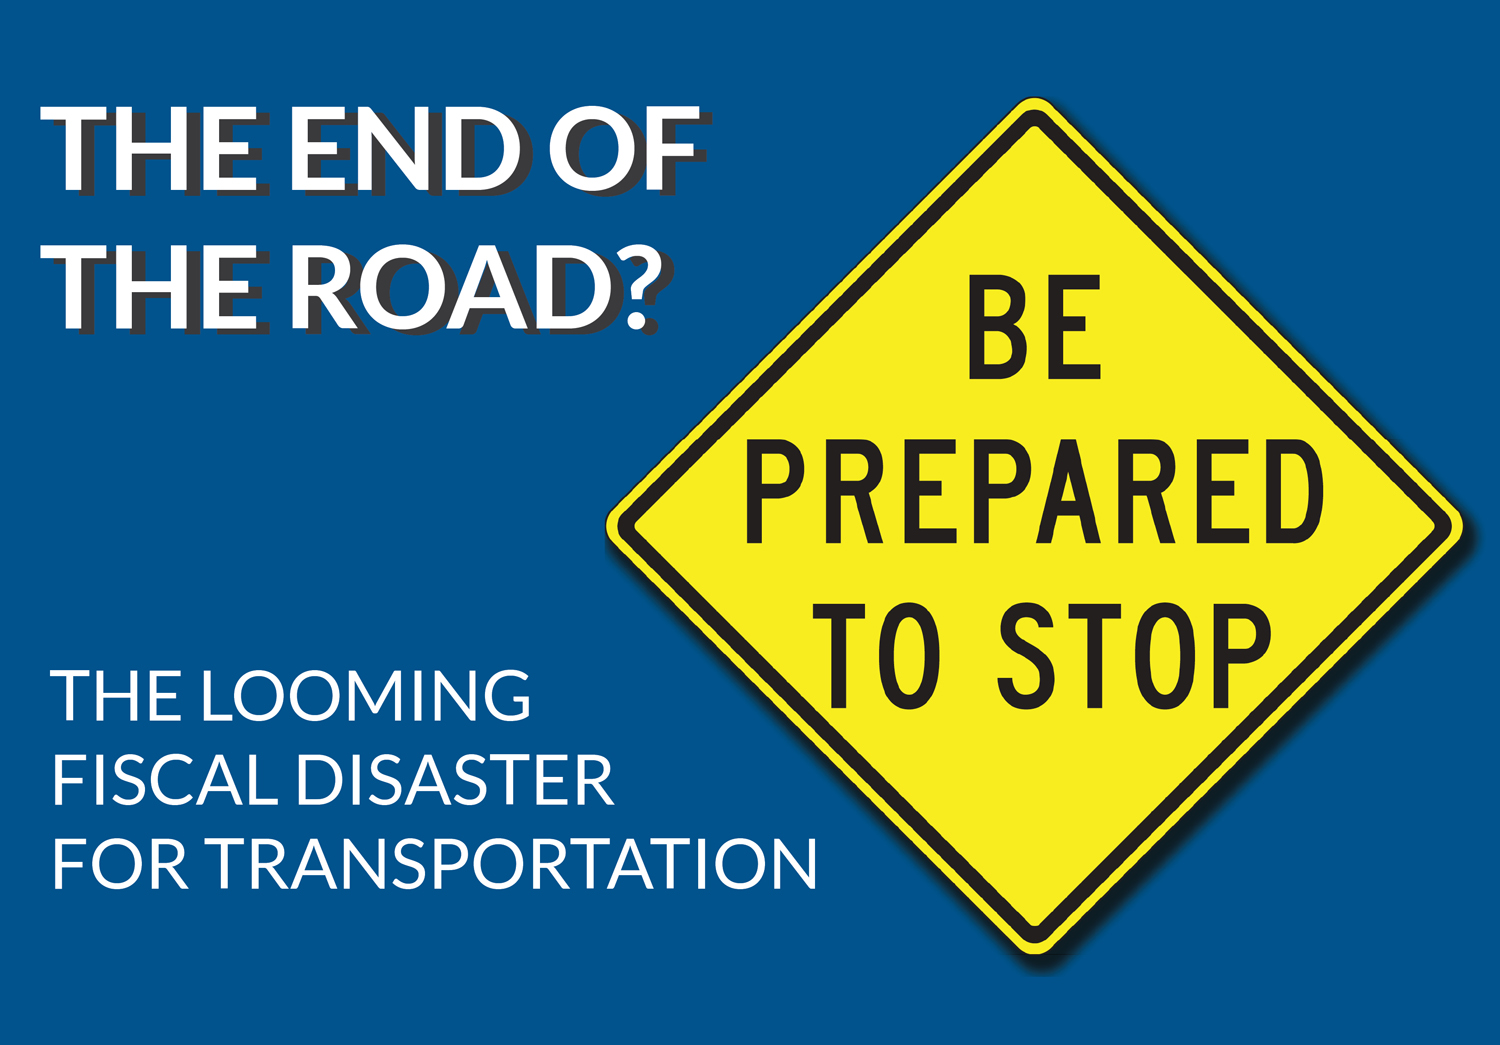 End of the Road? The looming fiscal disaster for transportation